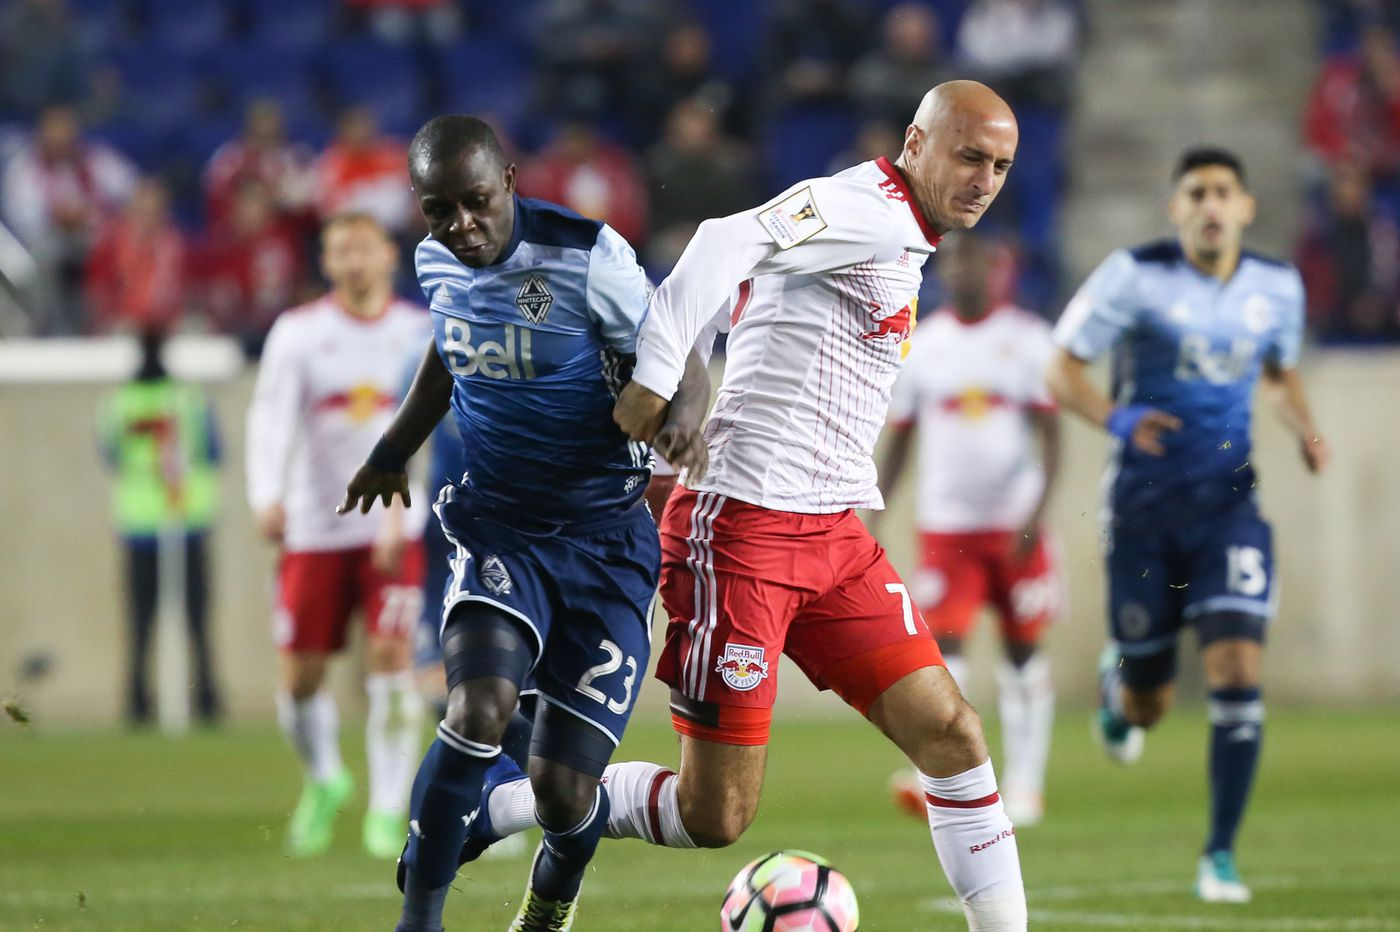 Union sign defender Aurélien Collin, a longtime villain with MLS rivals